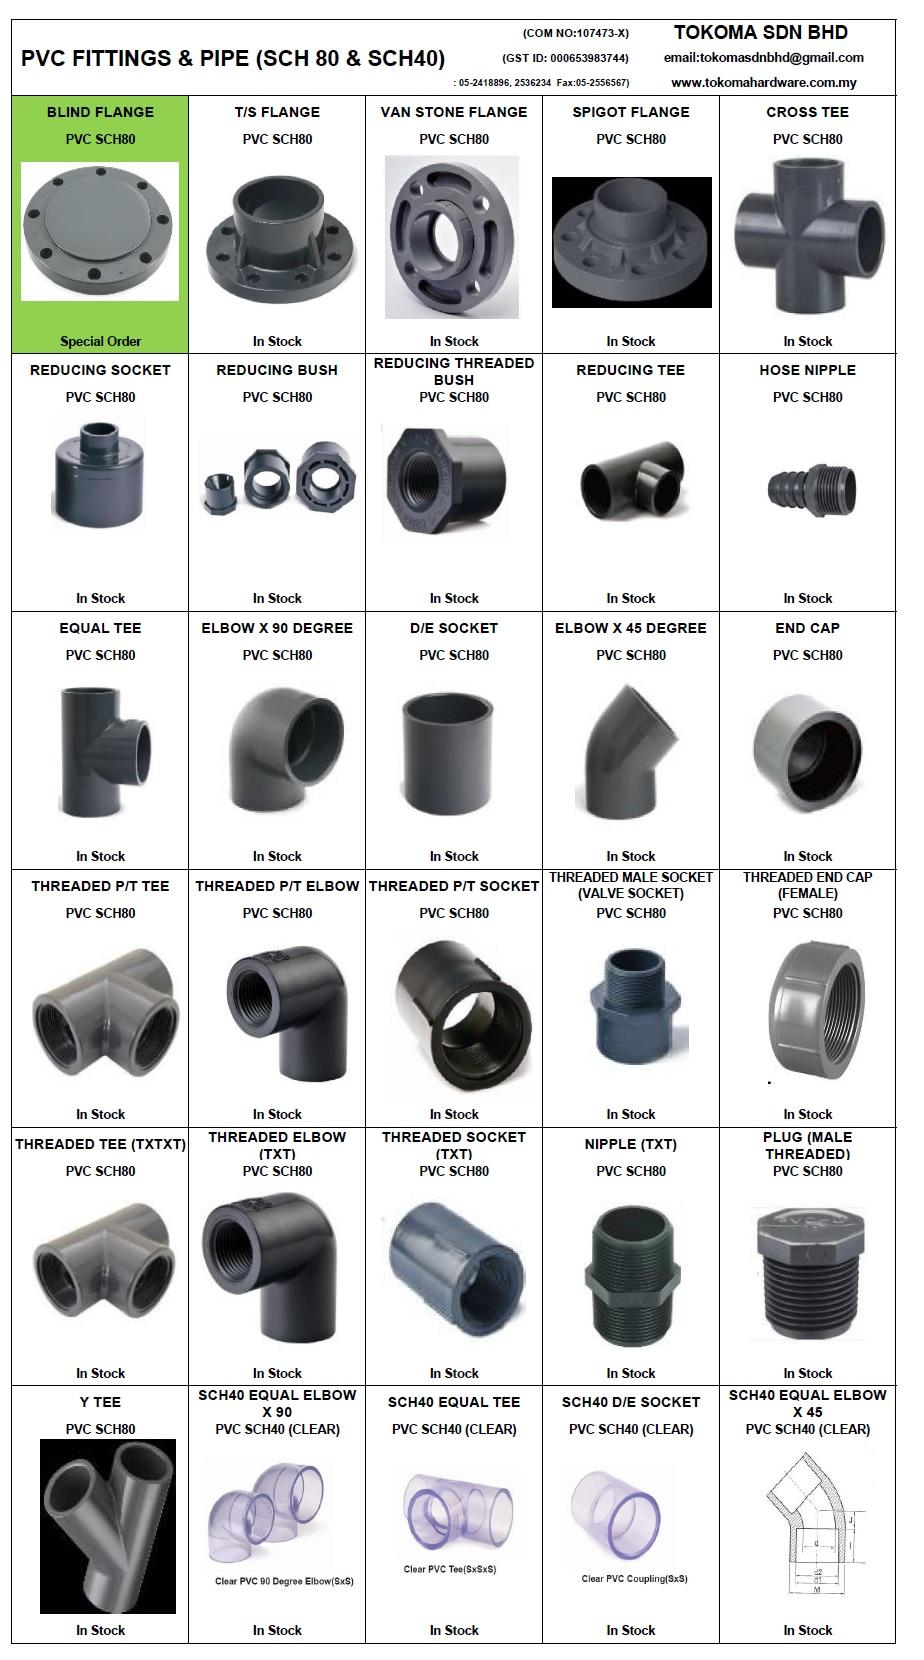 Upvc schedule fittings pipe